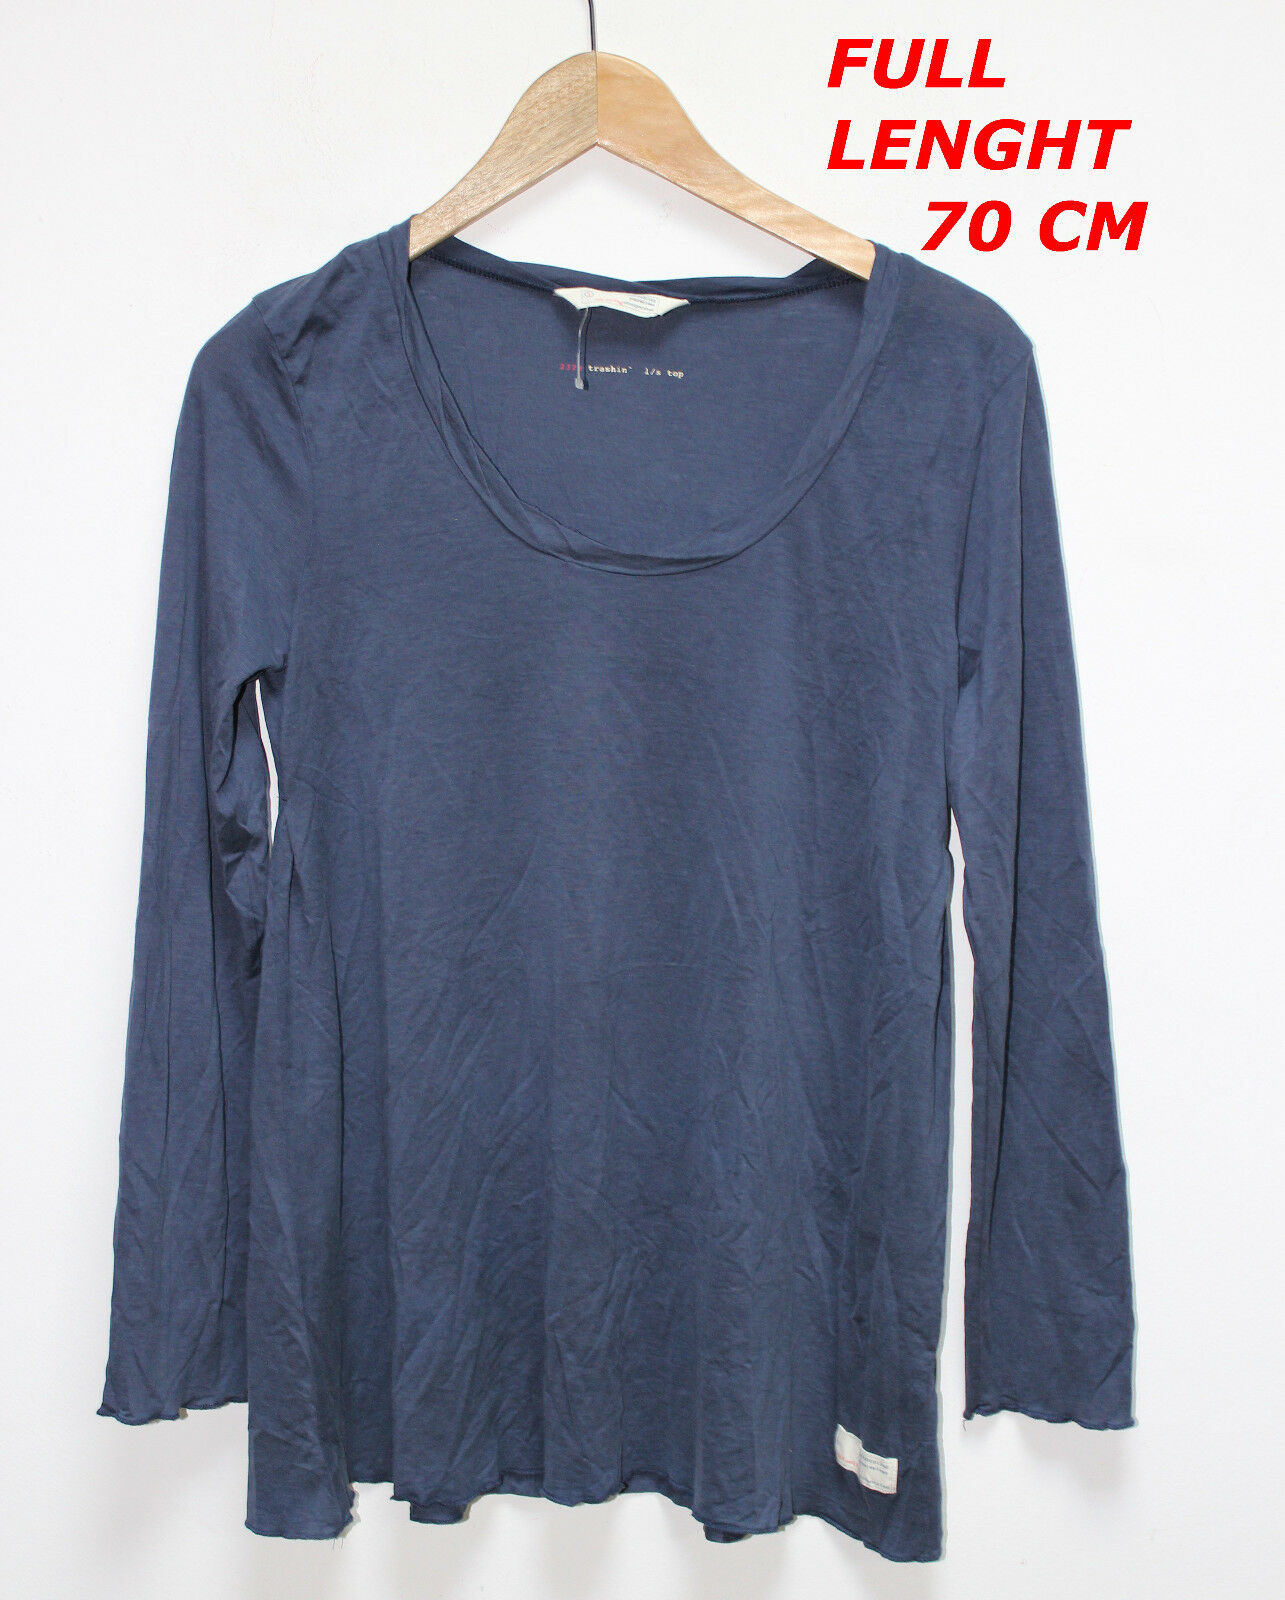 ODD MOLLY WOMAN LADY SHIRT BLOUSE LONG SLEEVE MARKED Größe 1 Blau Farbe HIGH 70 C